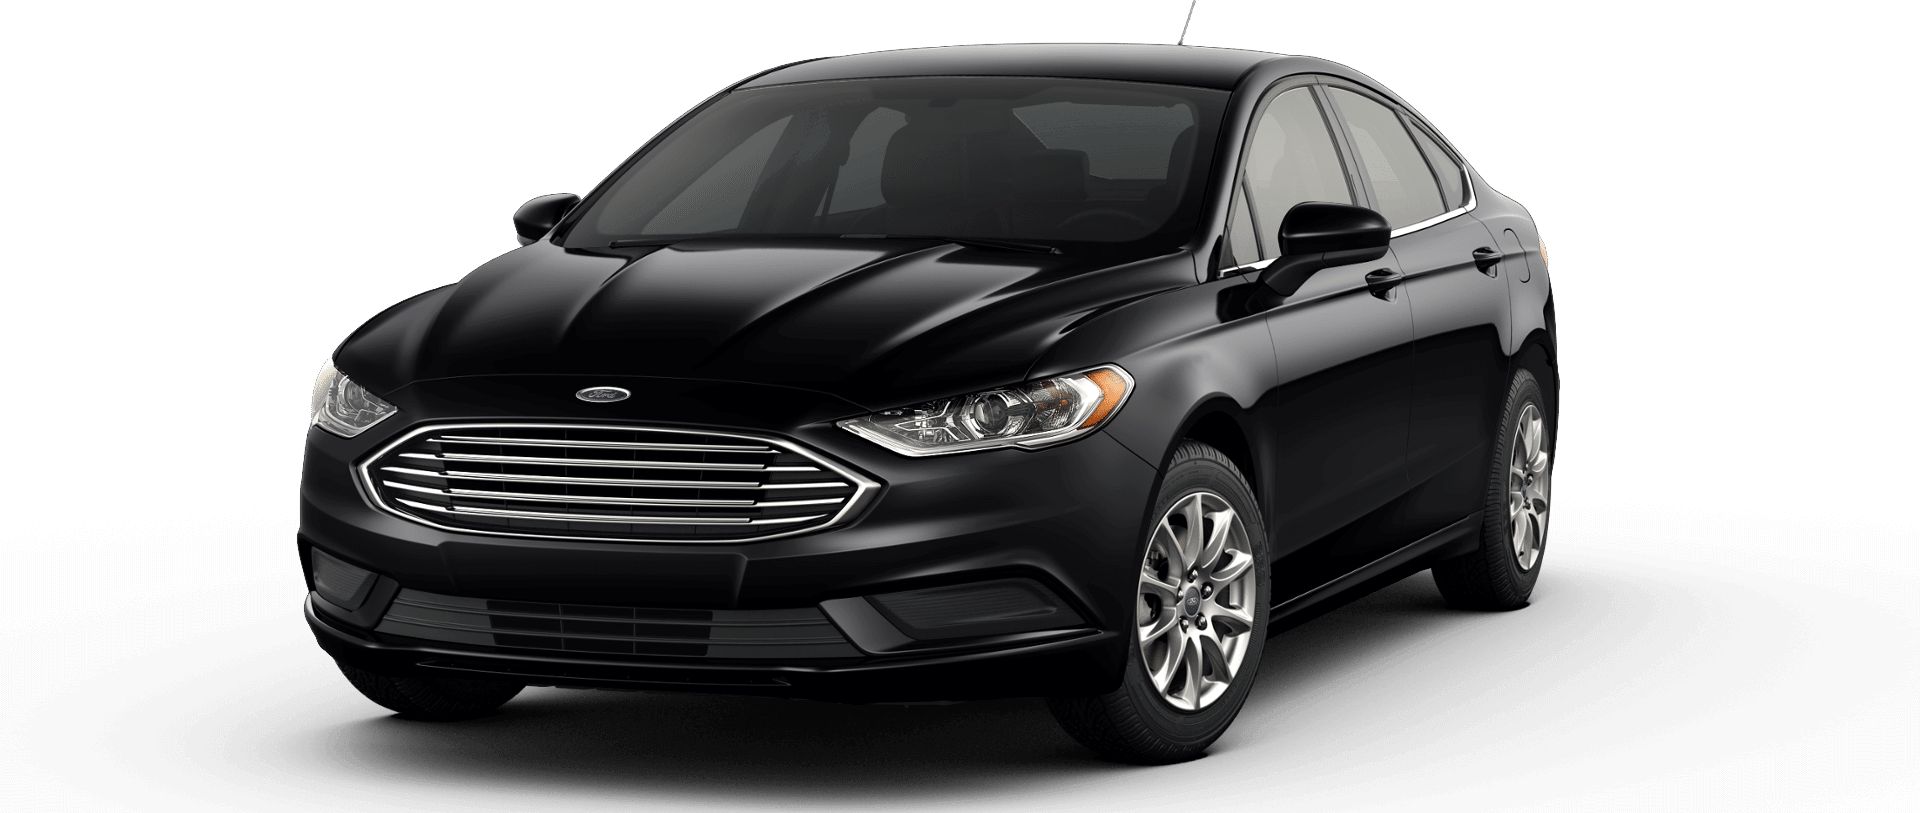 2017 Ford Fusion Info.